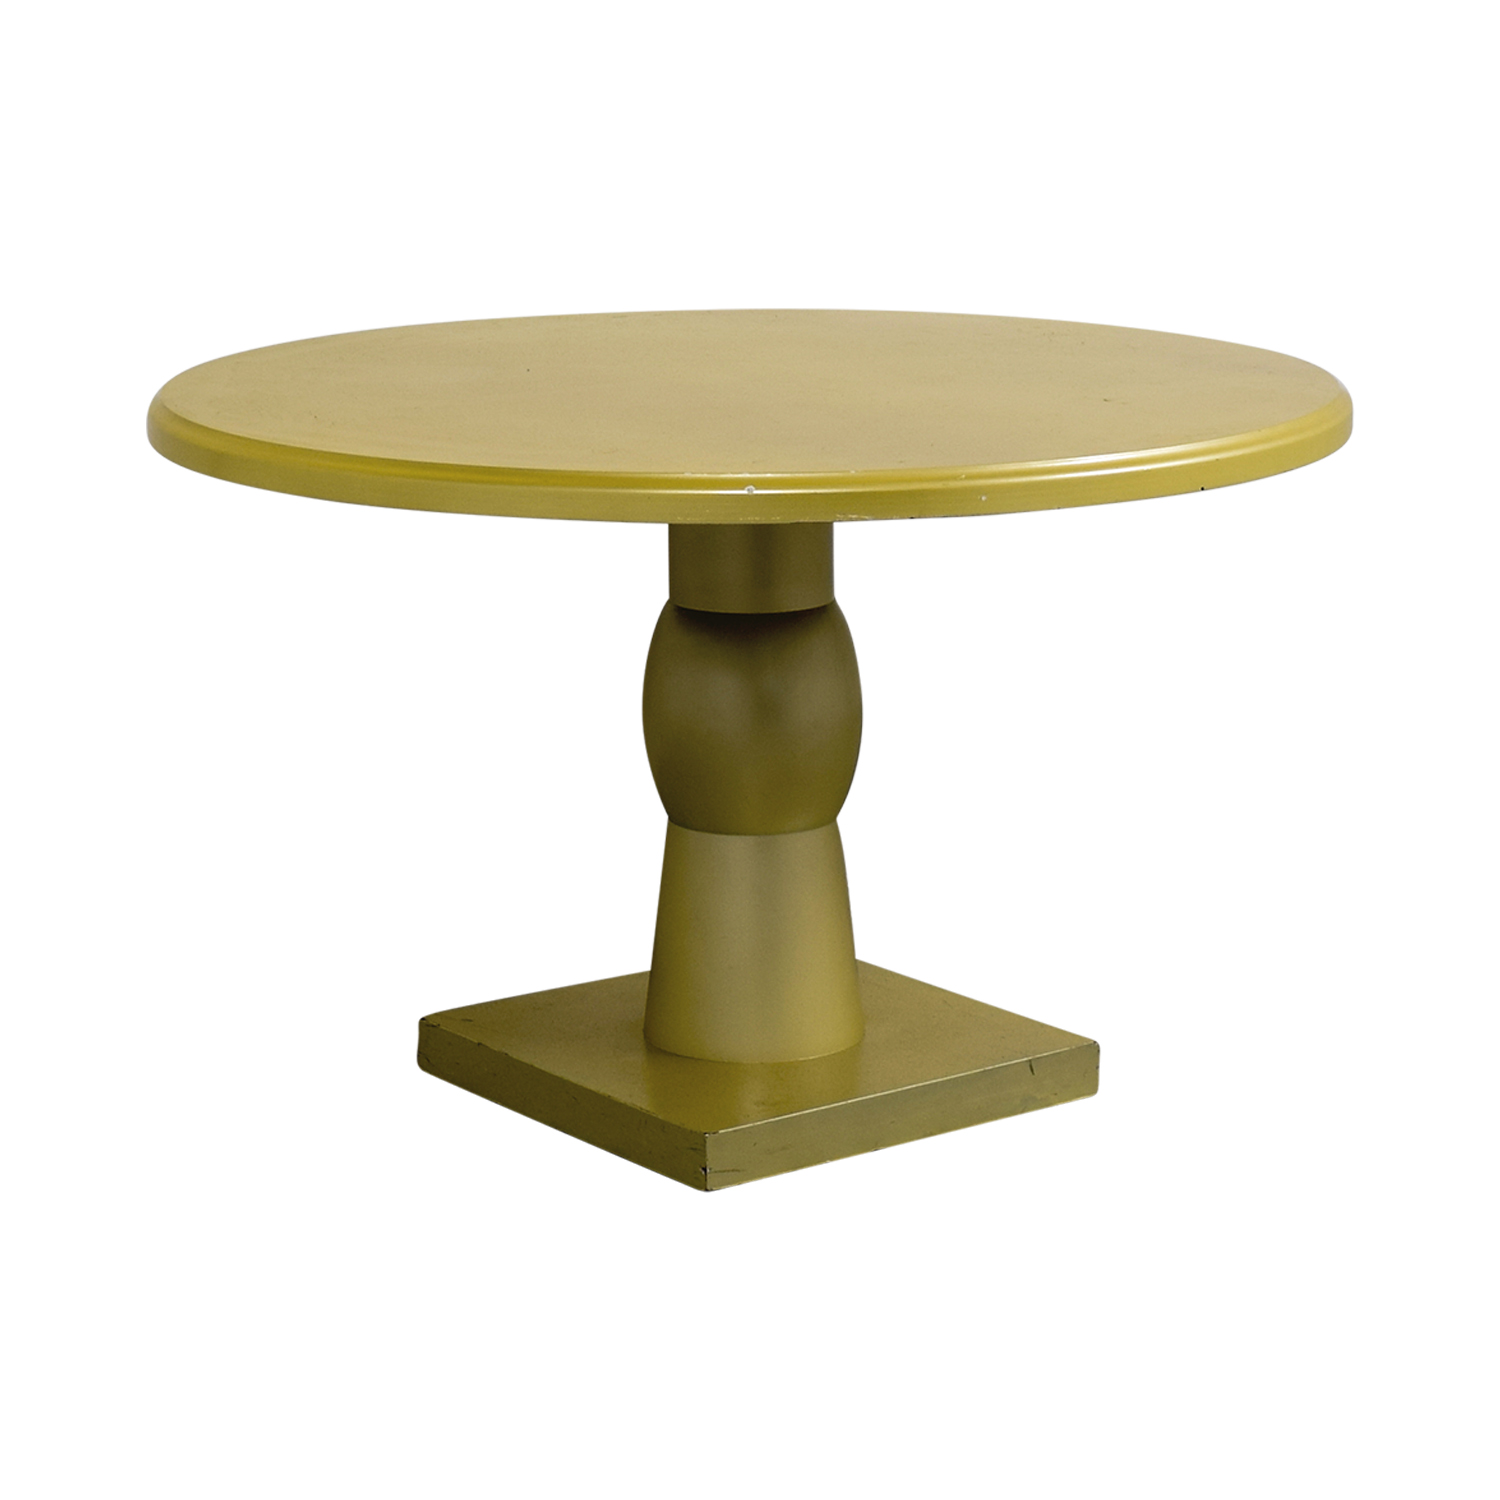 Christian Liaigre Christian Liaigre Holly Hunt Scarab Vanilla Table used